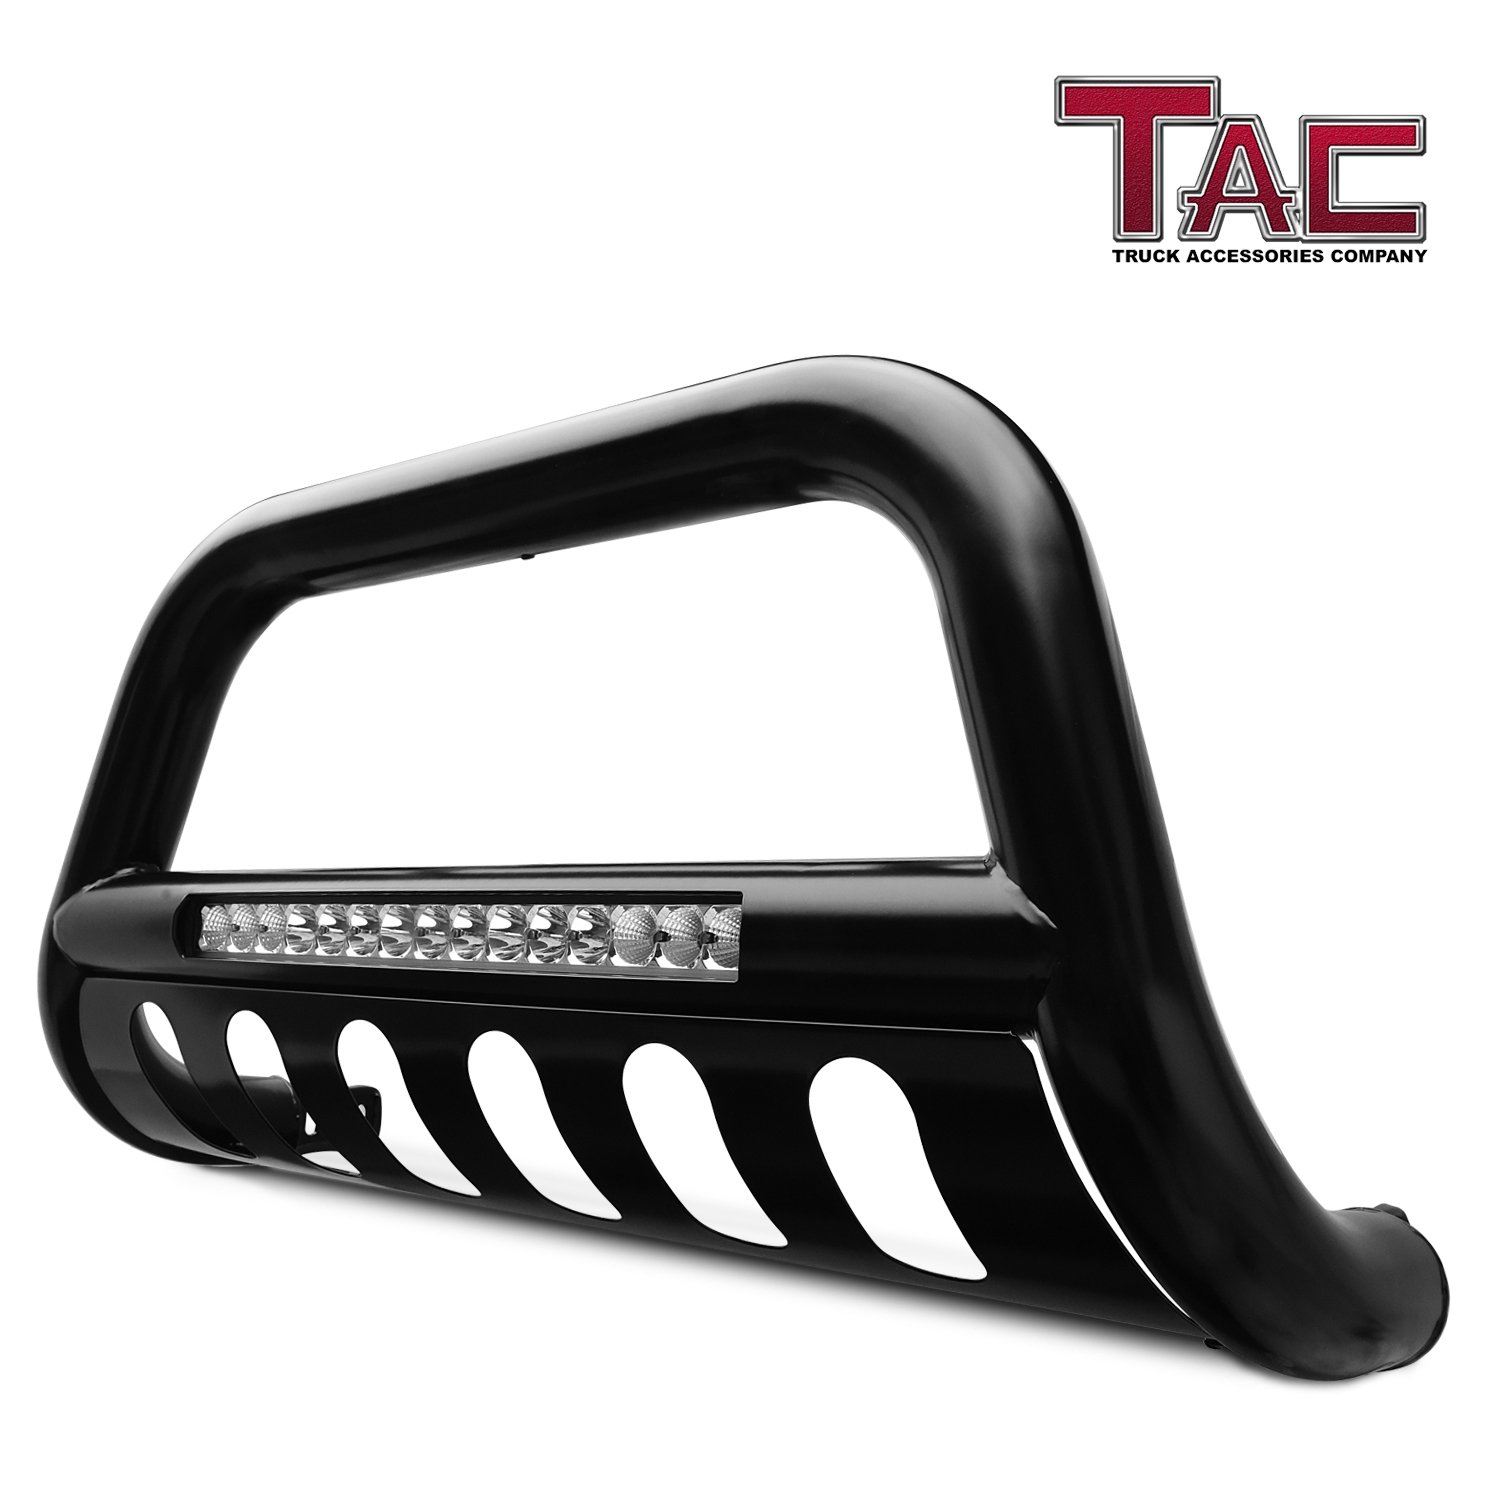 2017 Toyota Tundra Accessories >> Buy Tac Truck Accessories Company Tac Led Lighting Bull Bar